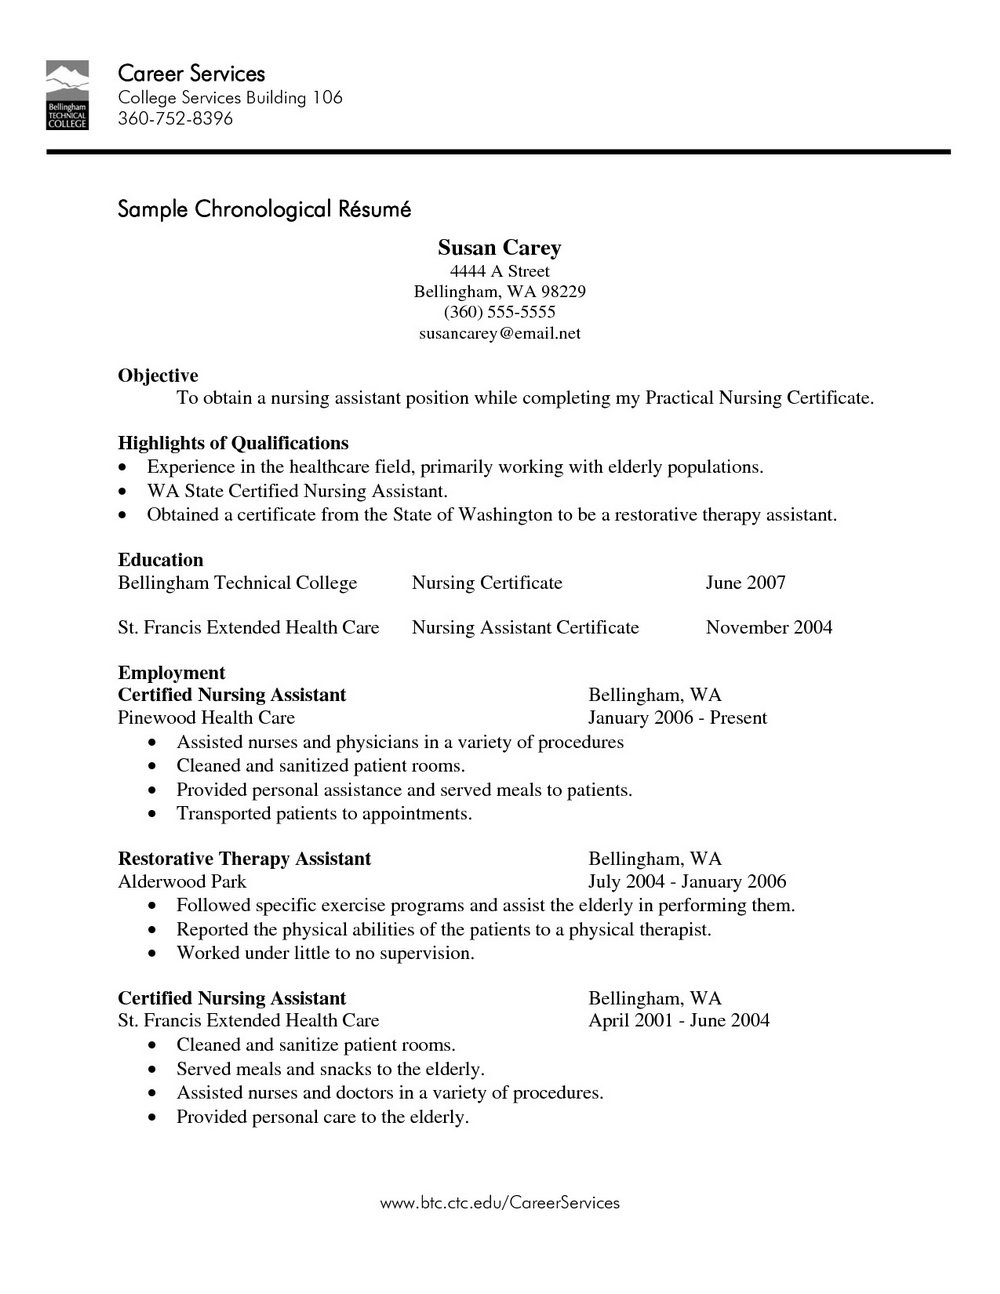 Resume For Registered Nurse With Experience